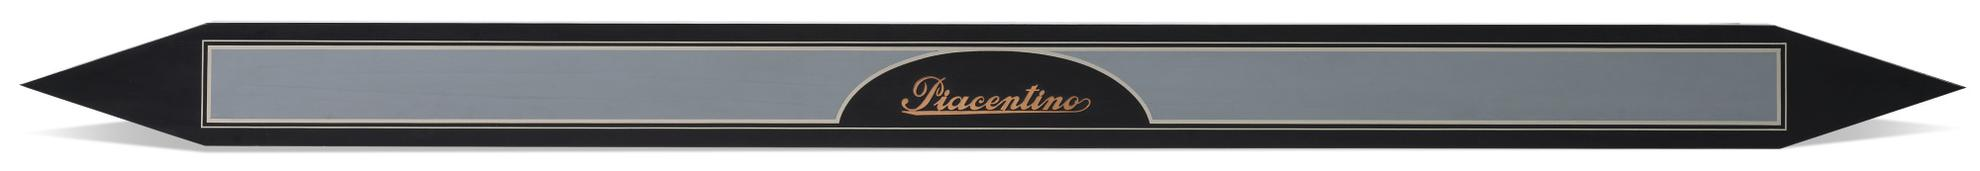 Gianni Piacentino-Black-Indigo And Gray-Blue Point Shaped Bar With Copper Signature I-1975